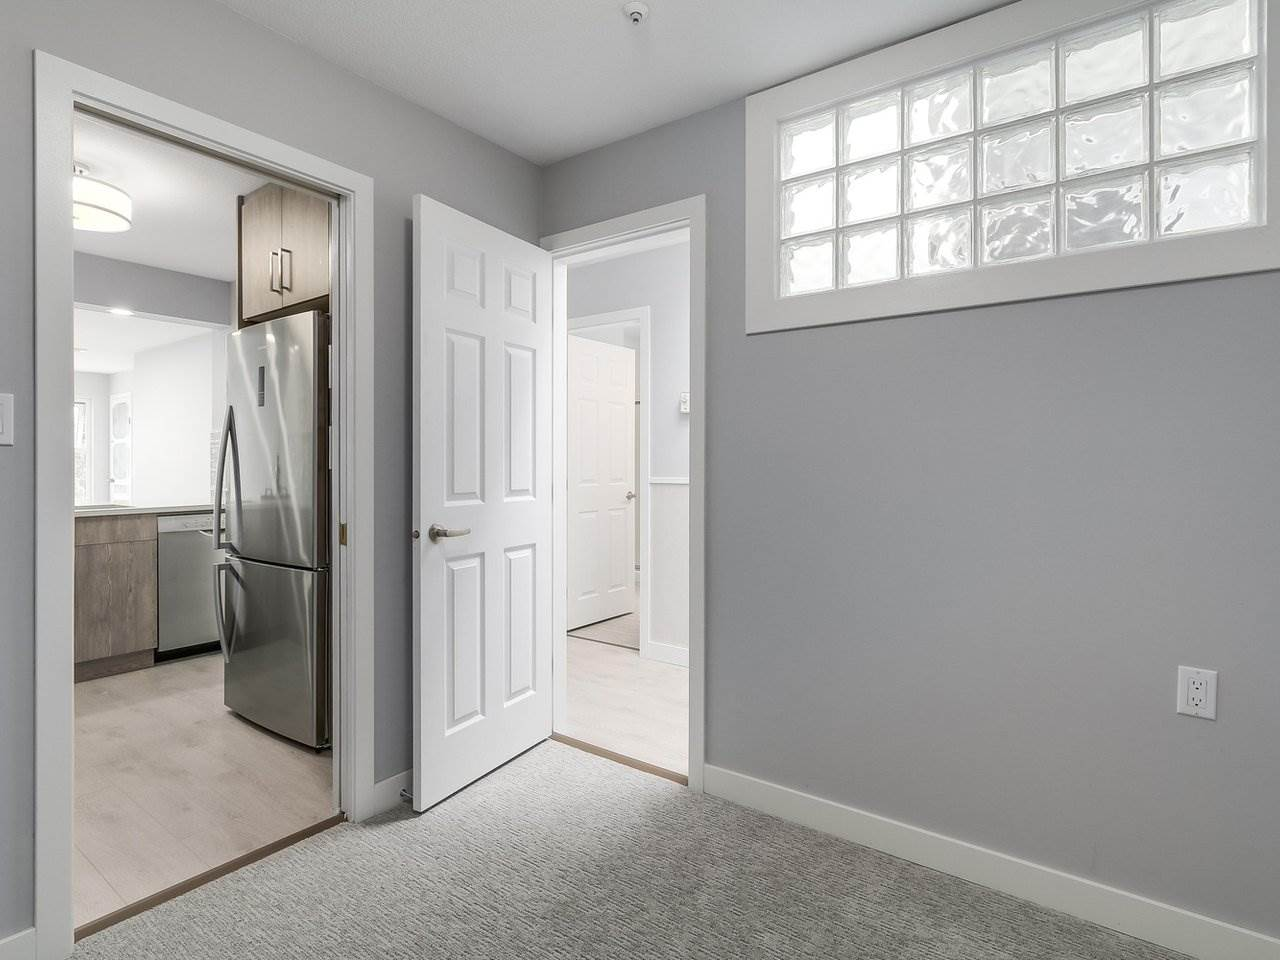 Condo Apartment at 312 4893 CLARENDON STREET, Unit 312, Vancouver East, British Columbia. Image 11